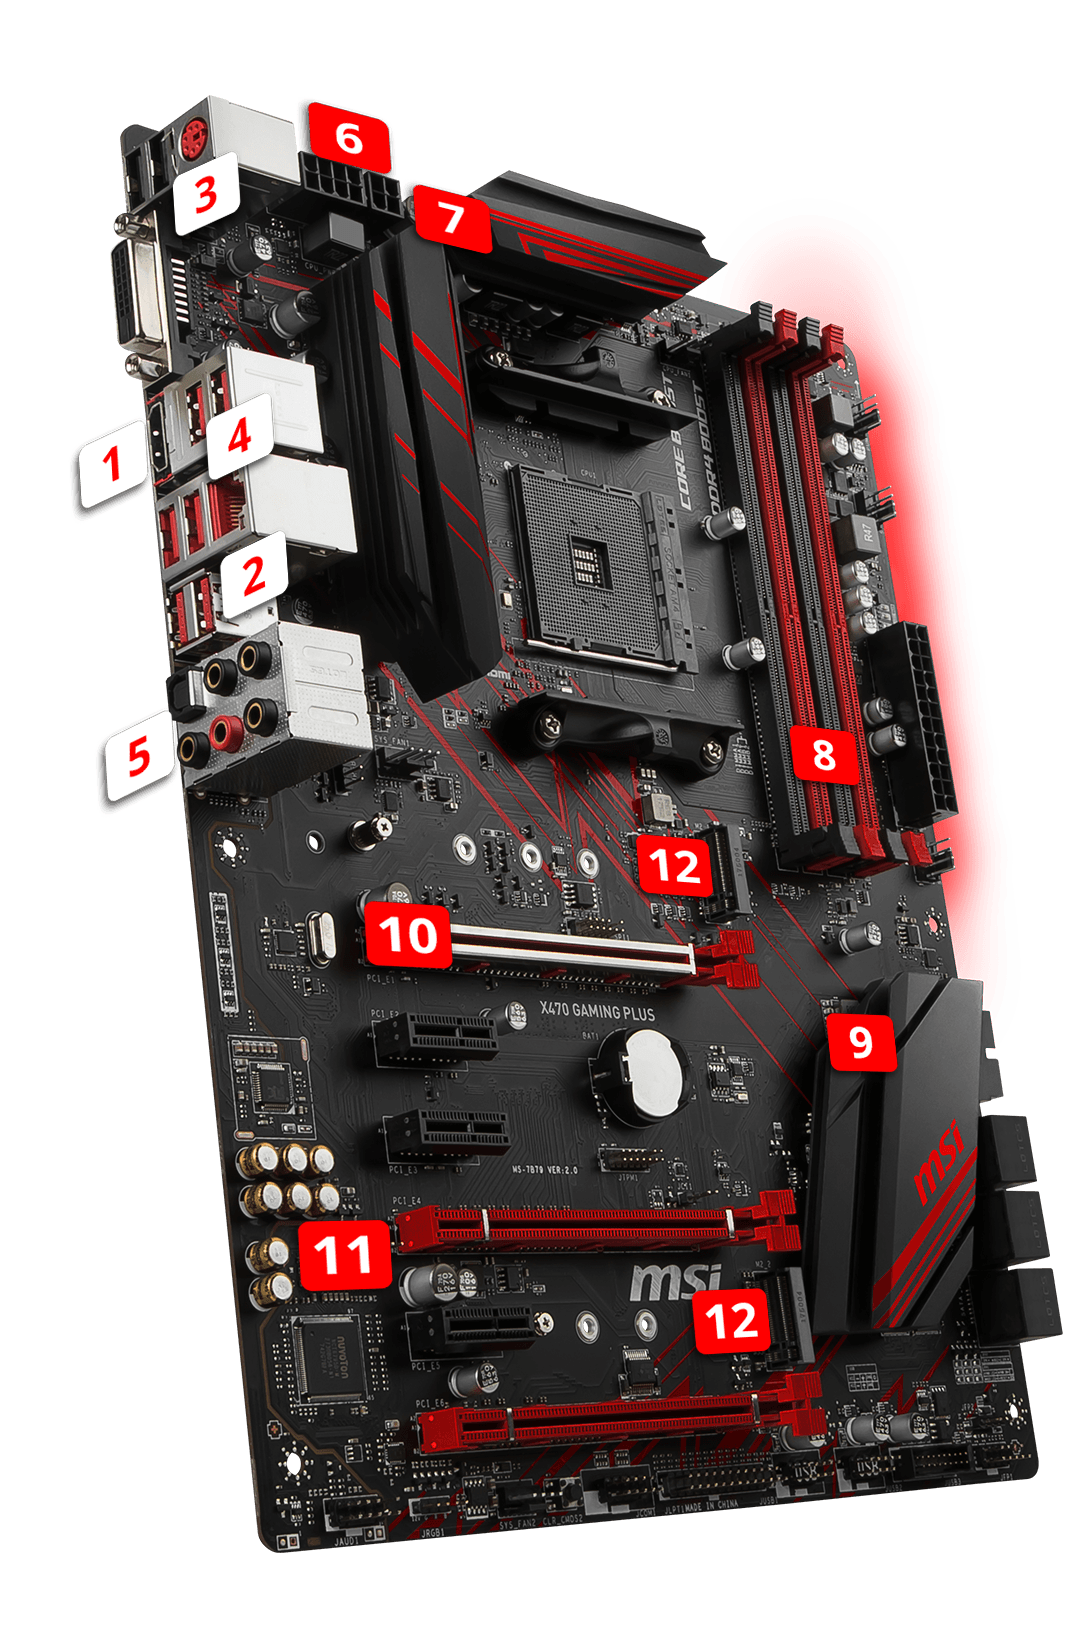 MSI X470 GAMING PLUS overview